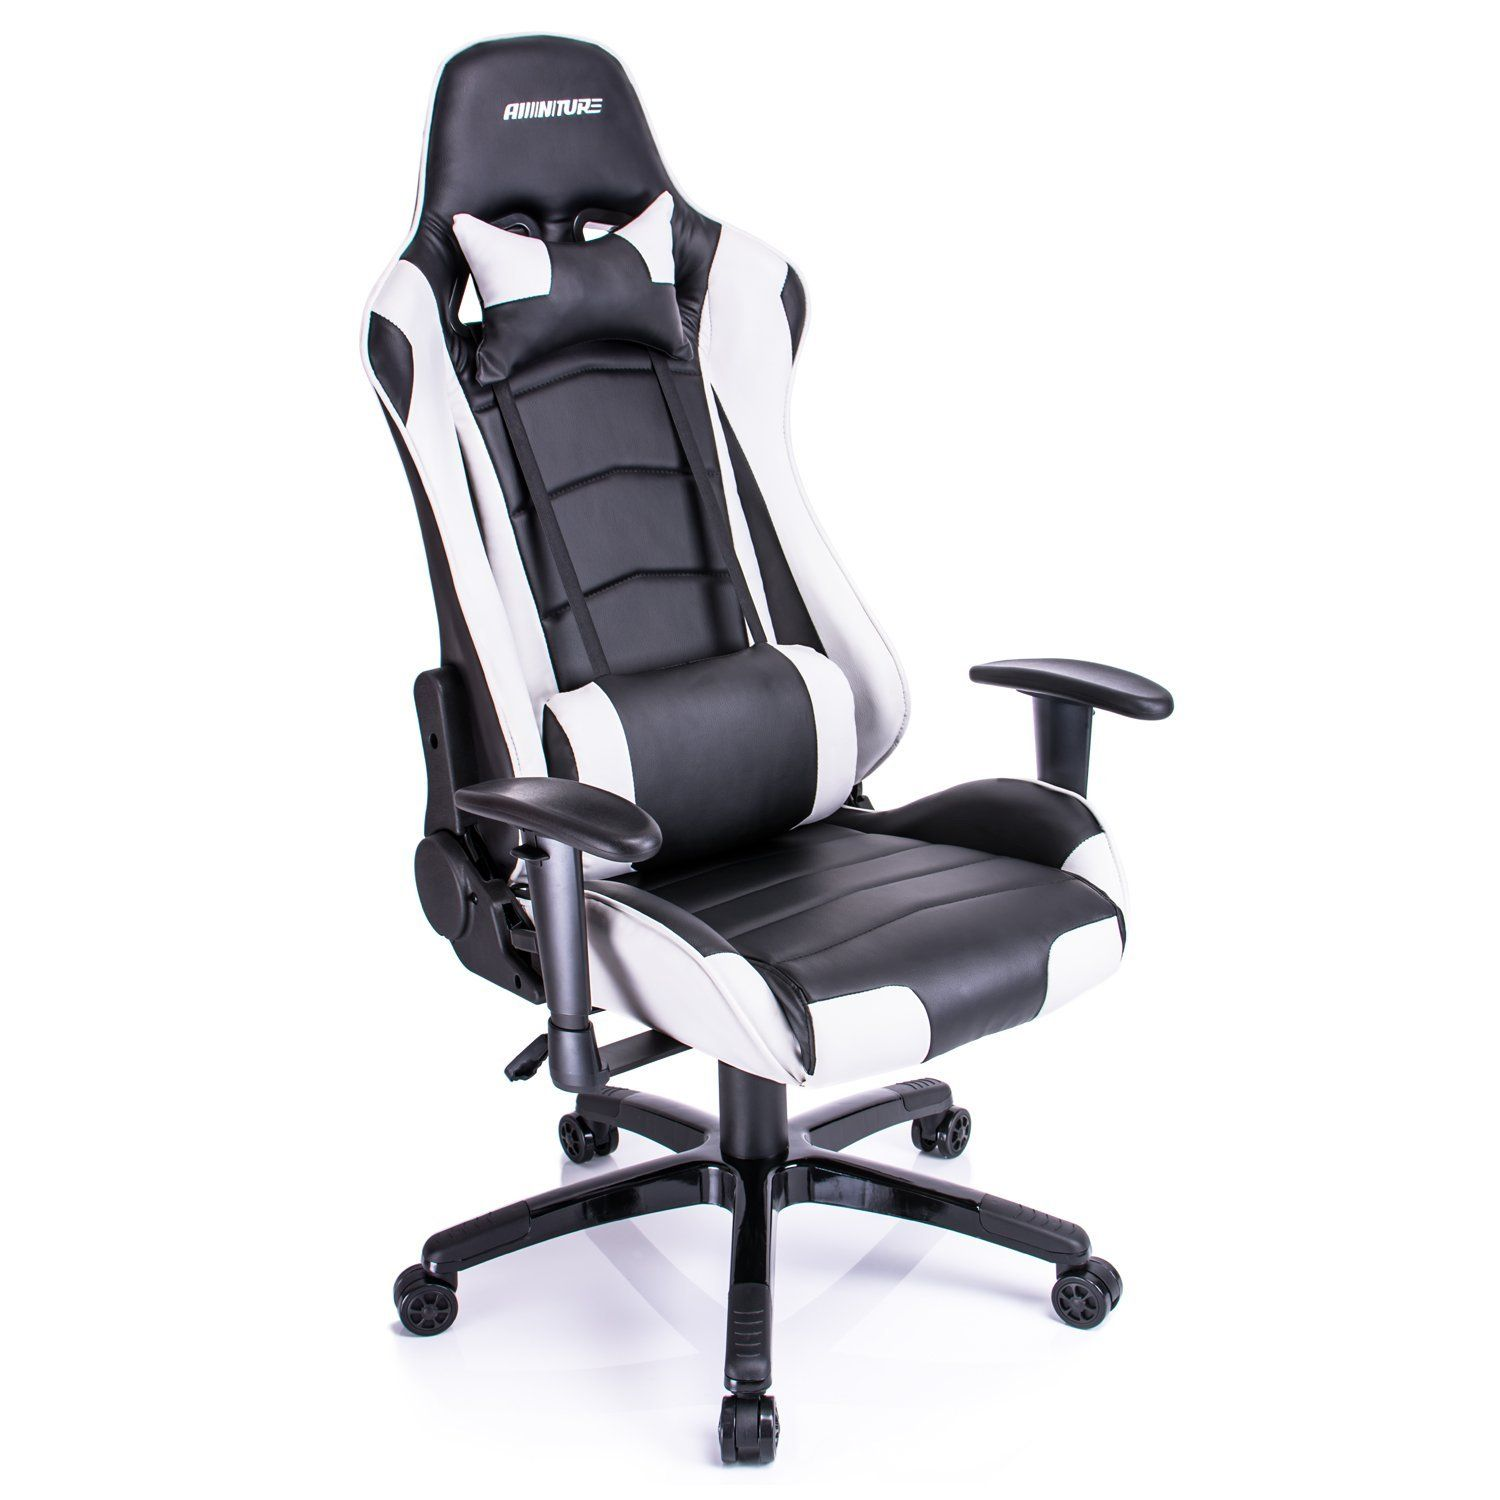 Aminitrue Highback Gaming Chair Racing Style